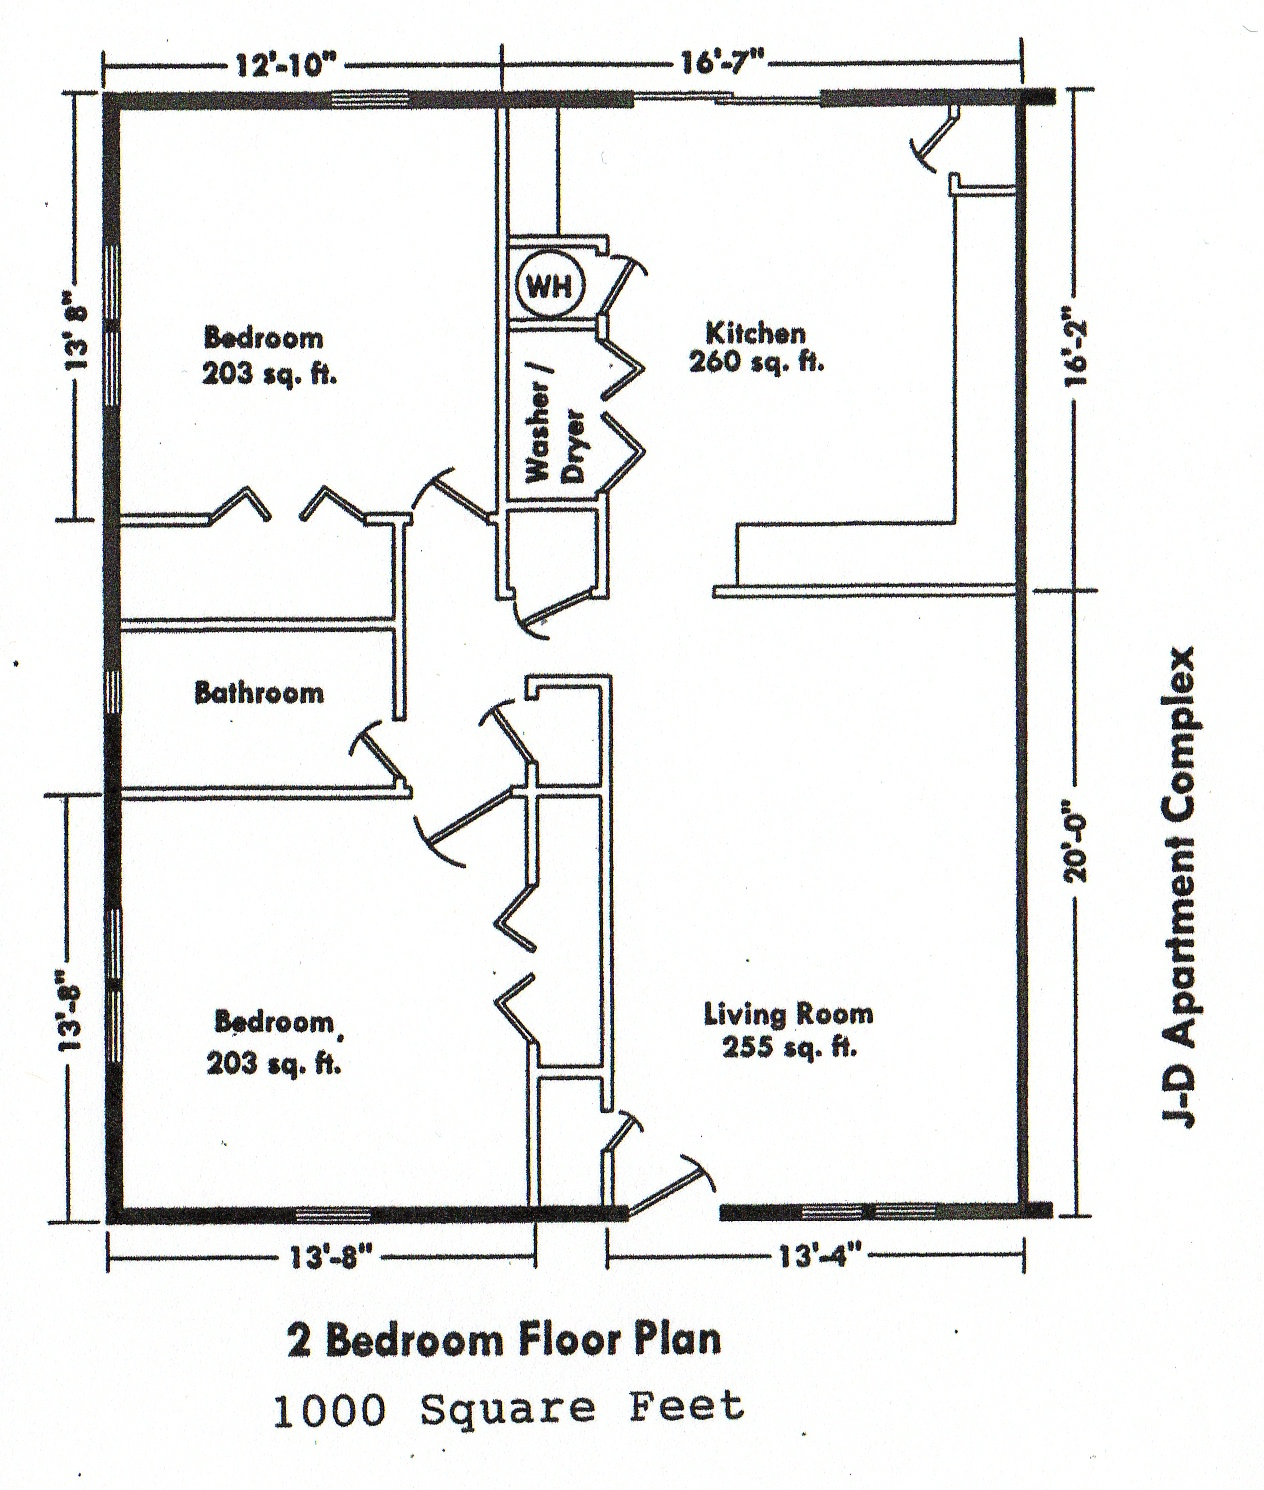 Two Bedroom House Plans Of Modular Home Modular Homes 2 Bedroom Floor Plans